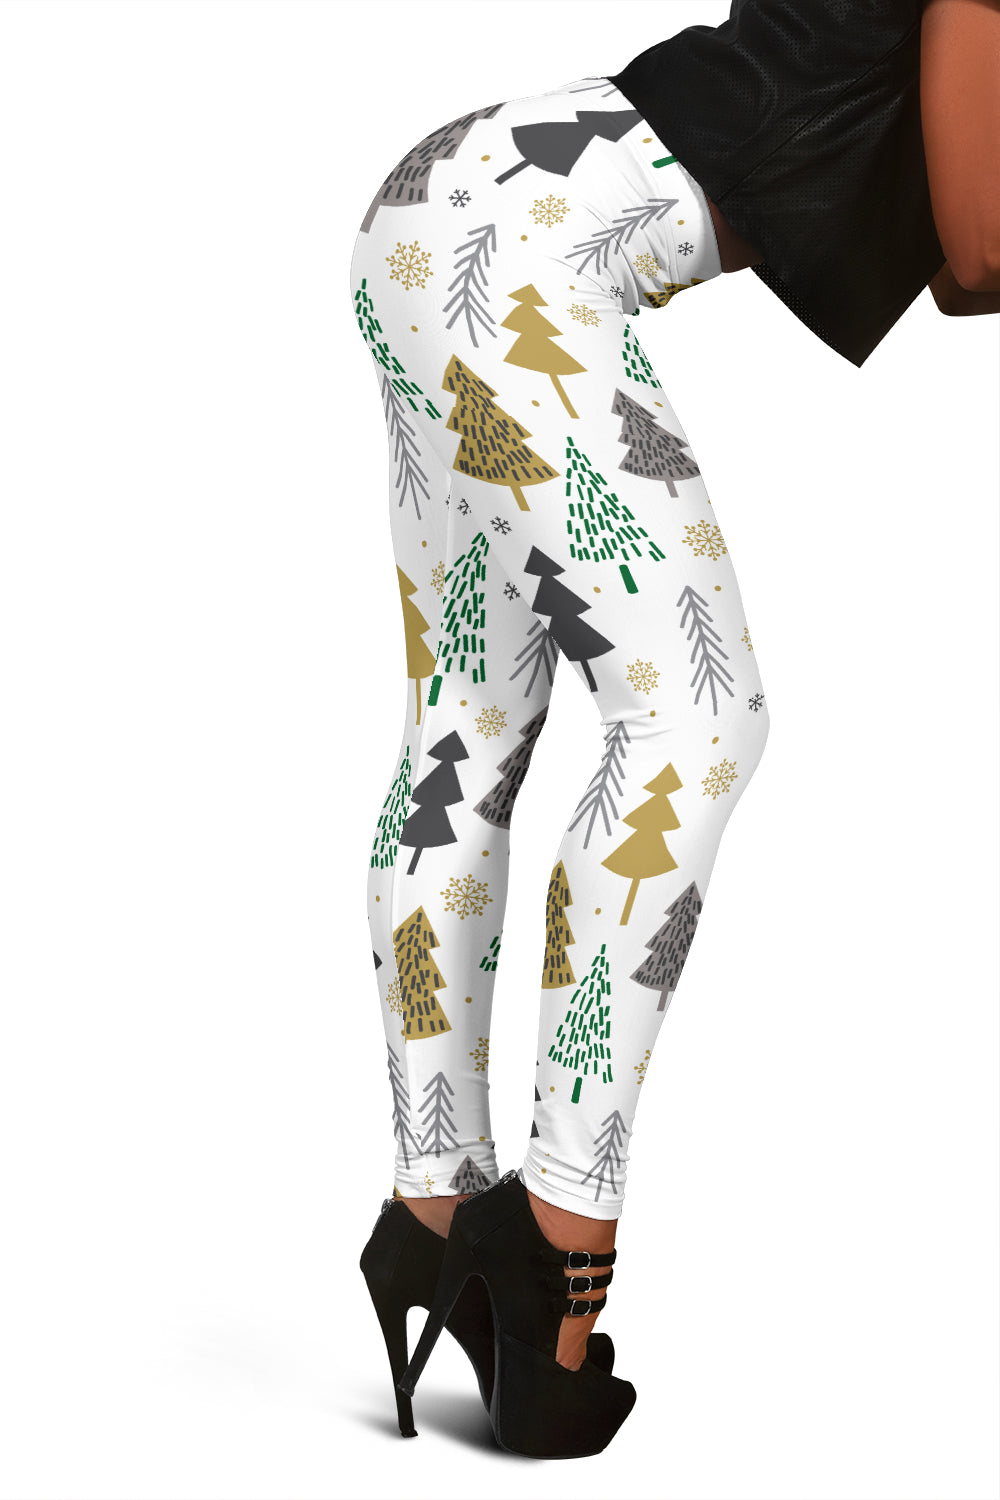 Christmas Tree Leggings For Women Who Love The Christmas Spirit